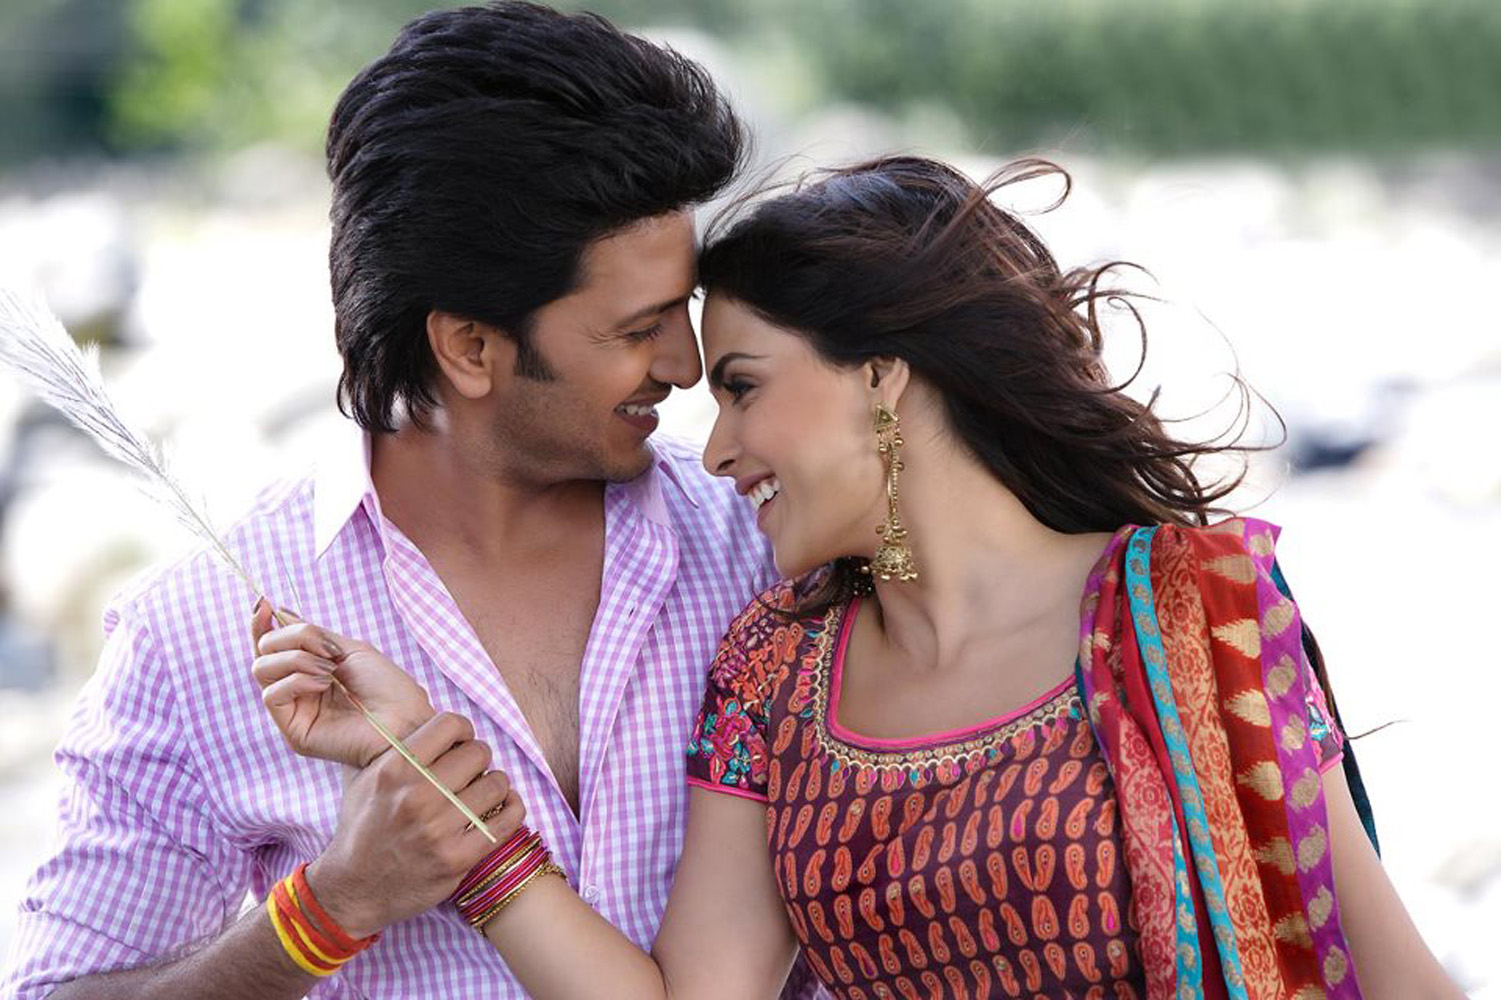 http://onlookersmedia.in/wp-content/uploads/2015/05/Riteish-Deshmukh-Genelia-Family-Stills-Images-Photos-Bollywood-Movie-Onlookers-Media-6.jpg